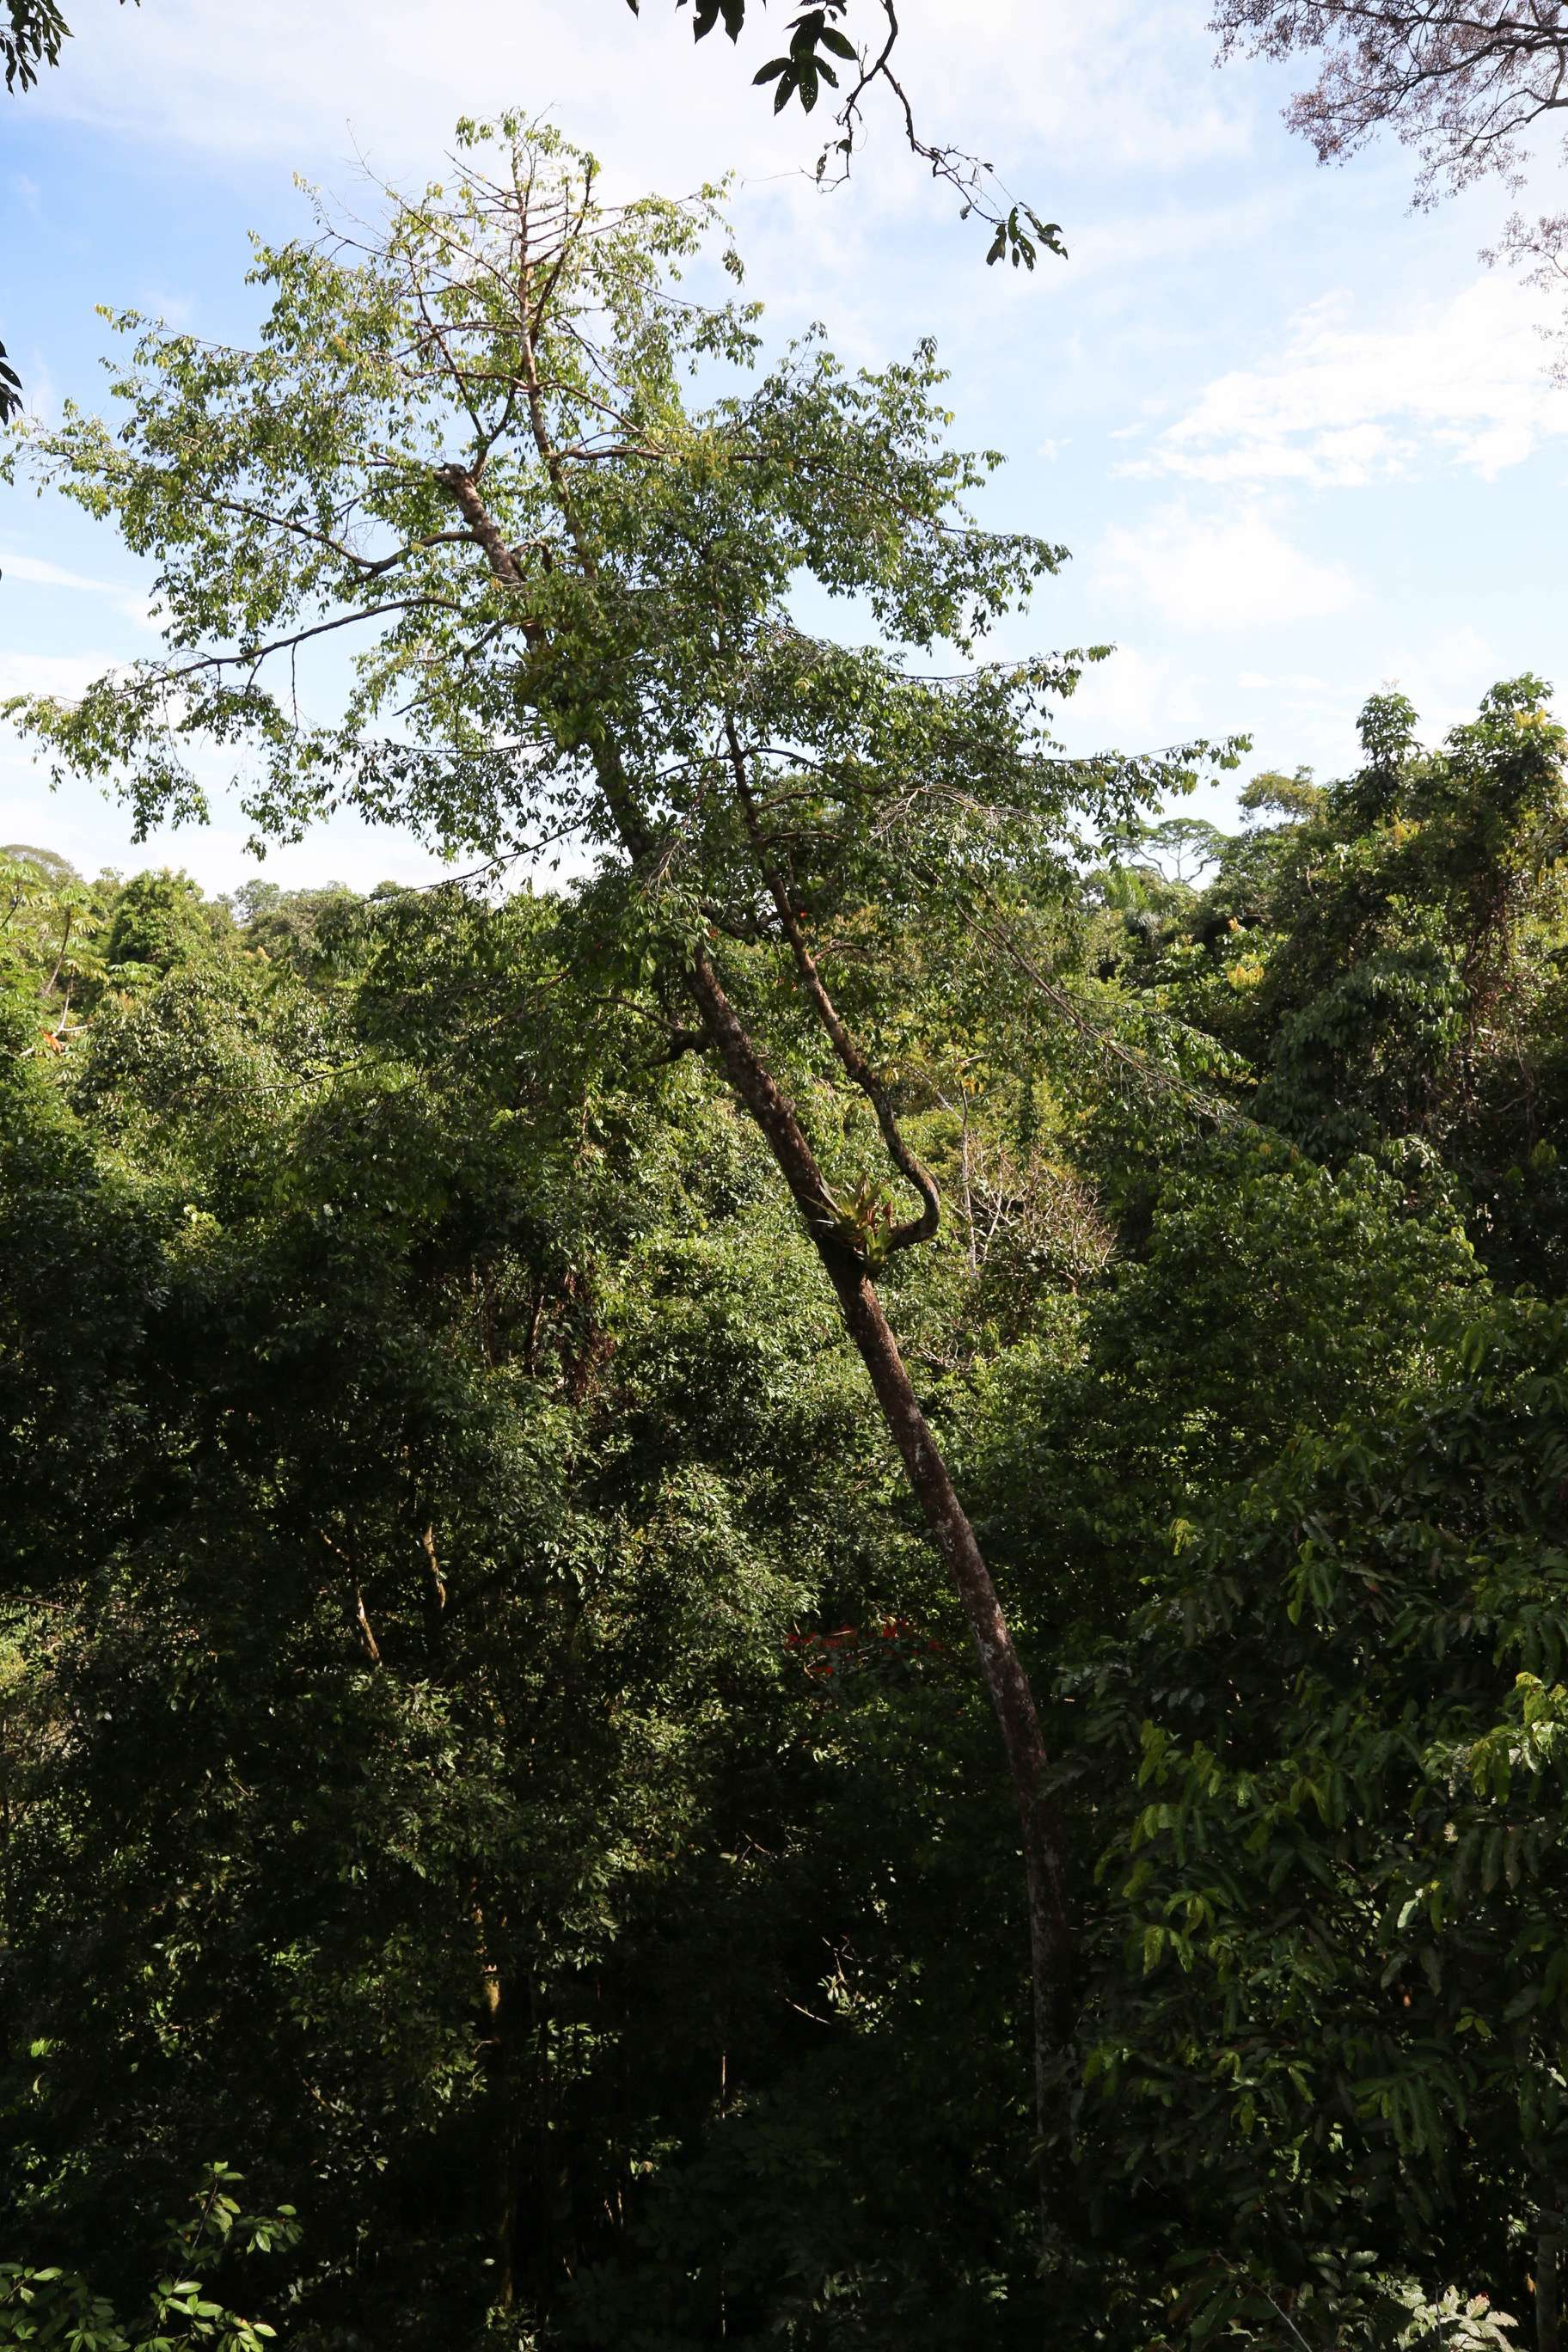 Once you are at treetop level, you gain a new appreciation for the jungle canopy.